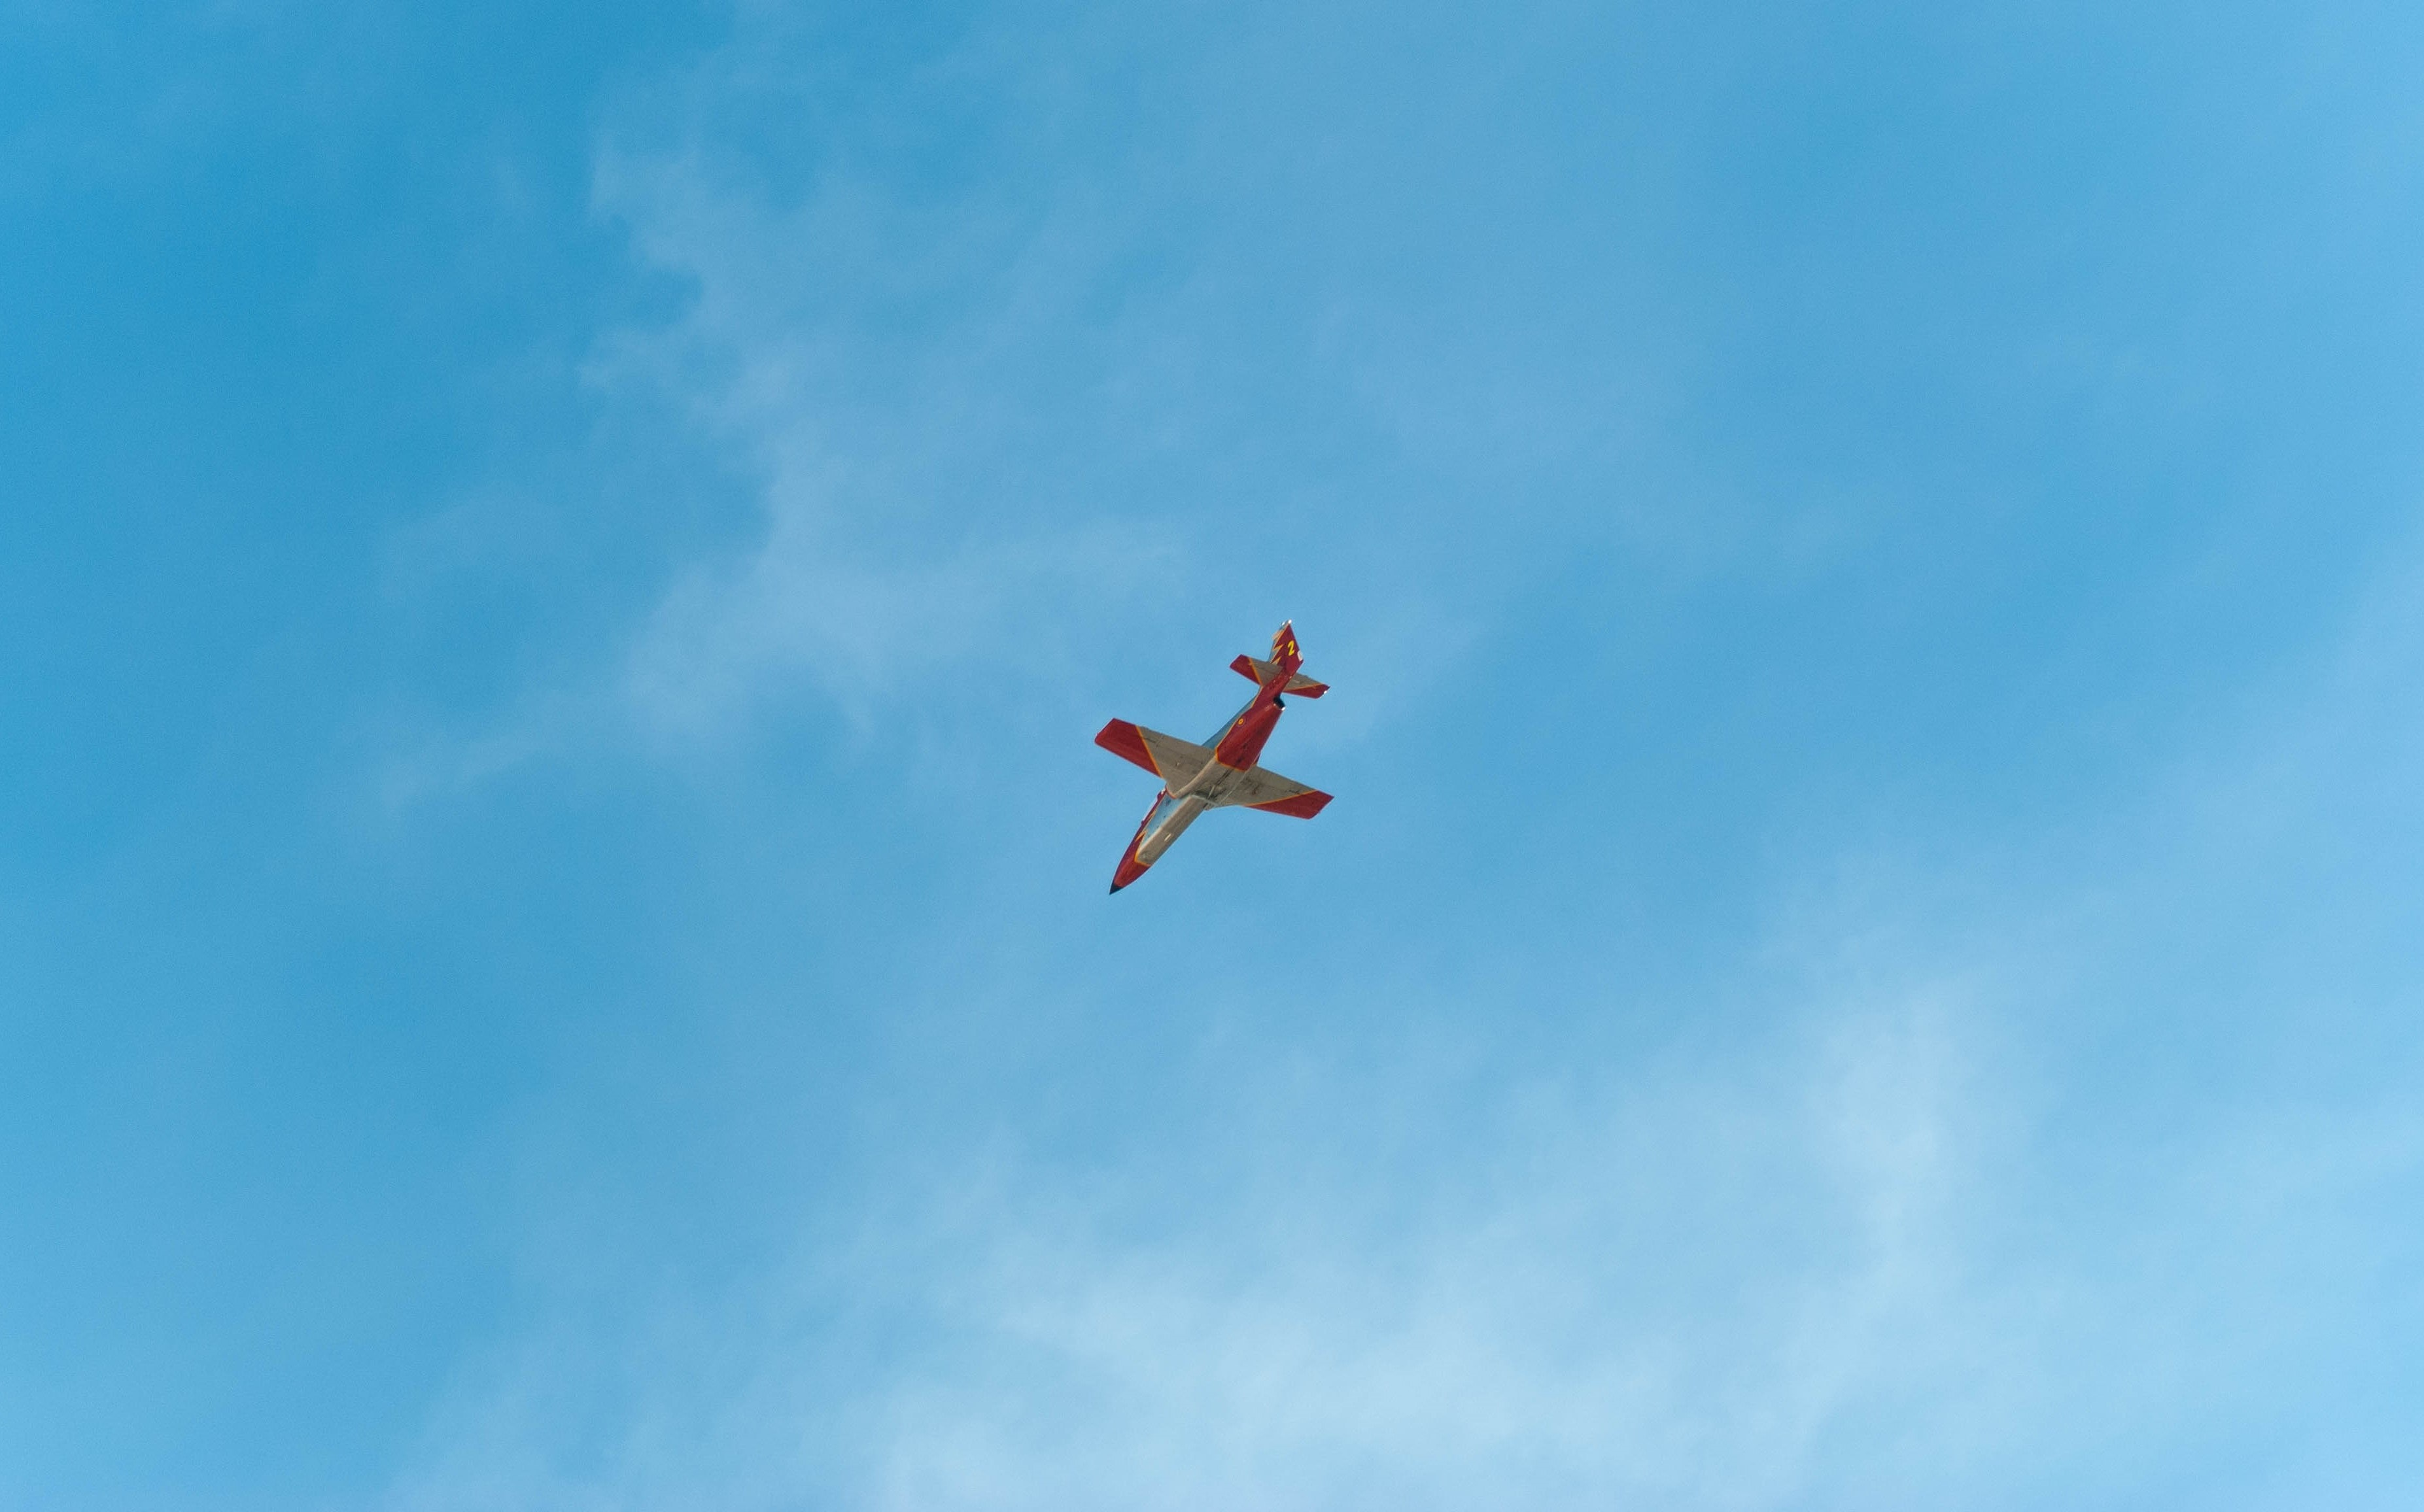 red and gray airplane on mid air during daytime